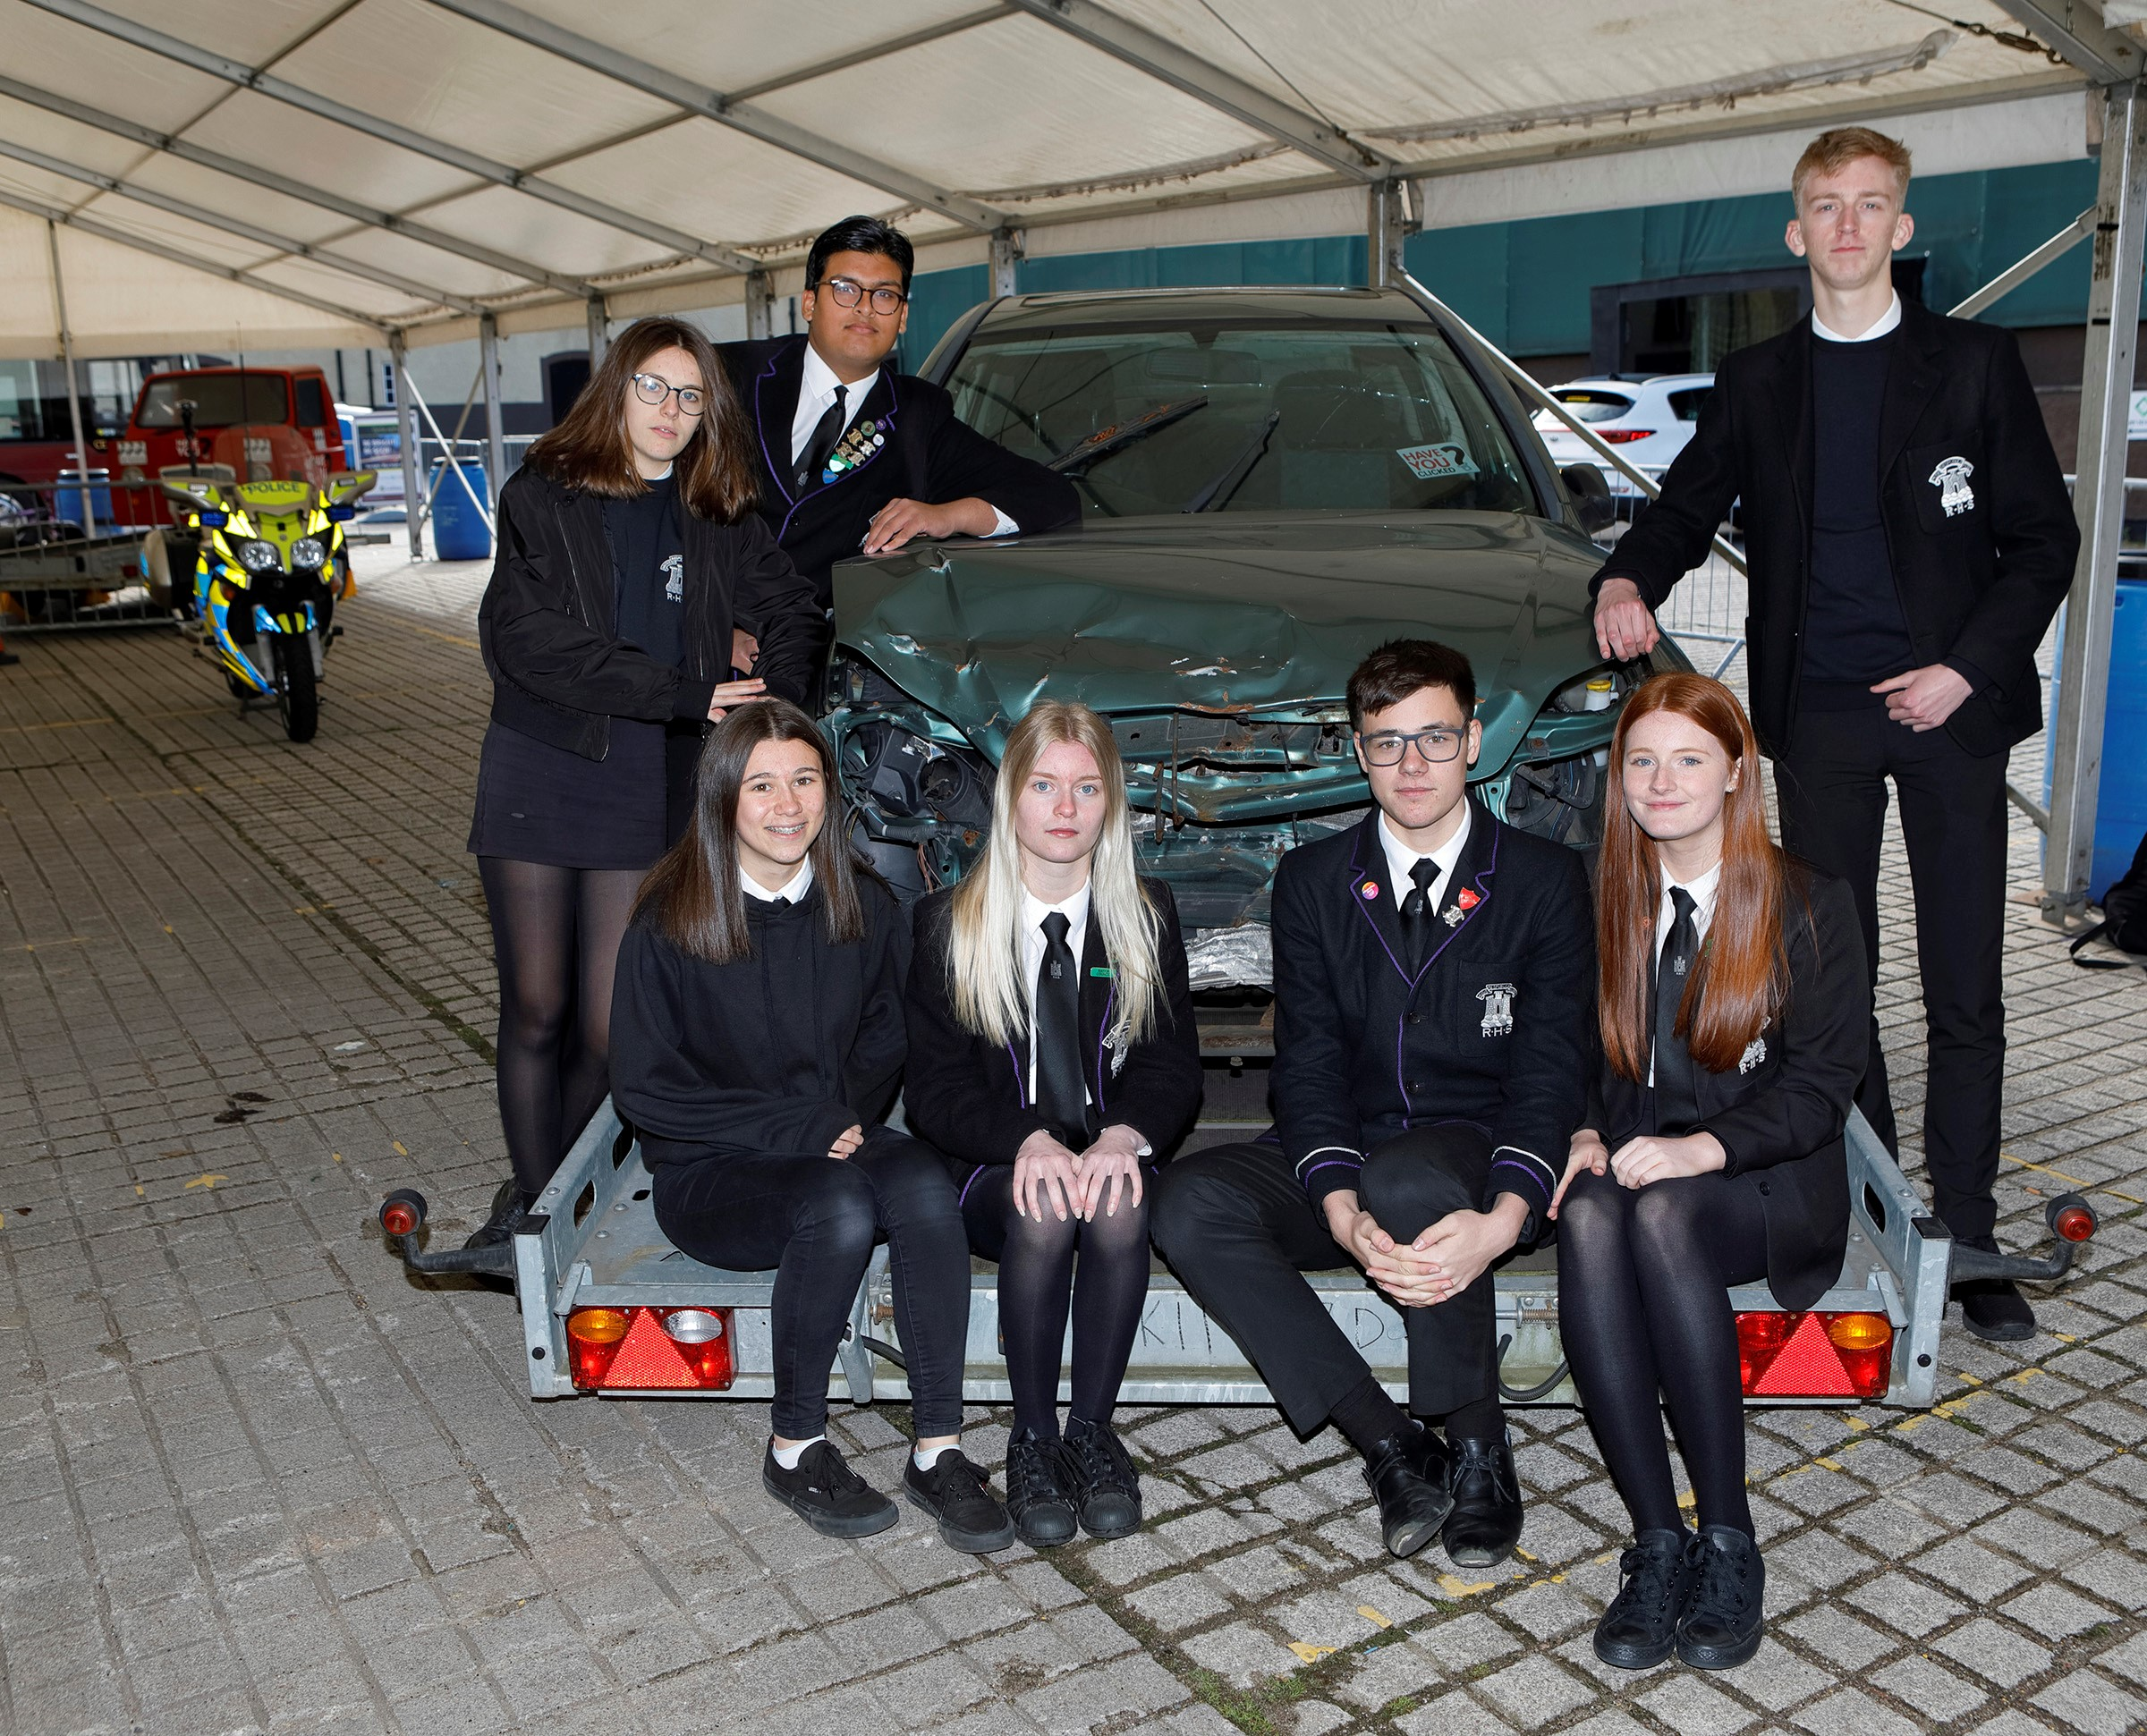 Royal High pupils see a car damaged by a crash to learn about the impact of irresponsible driving.